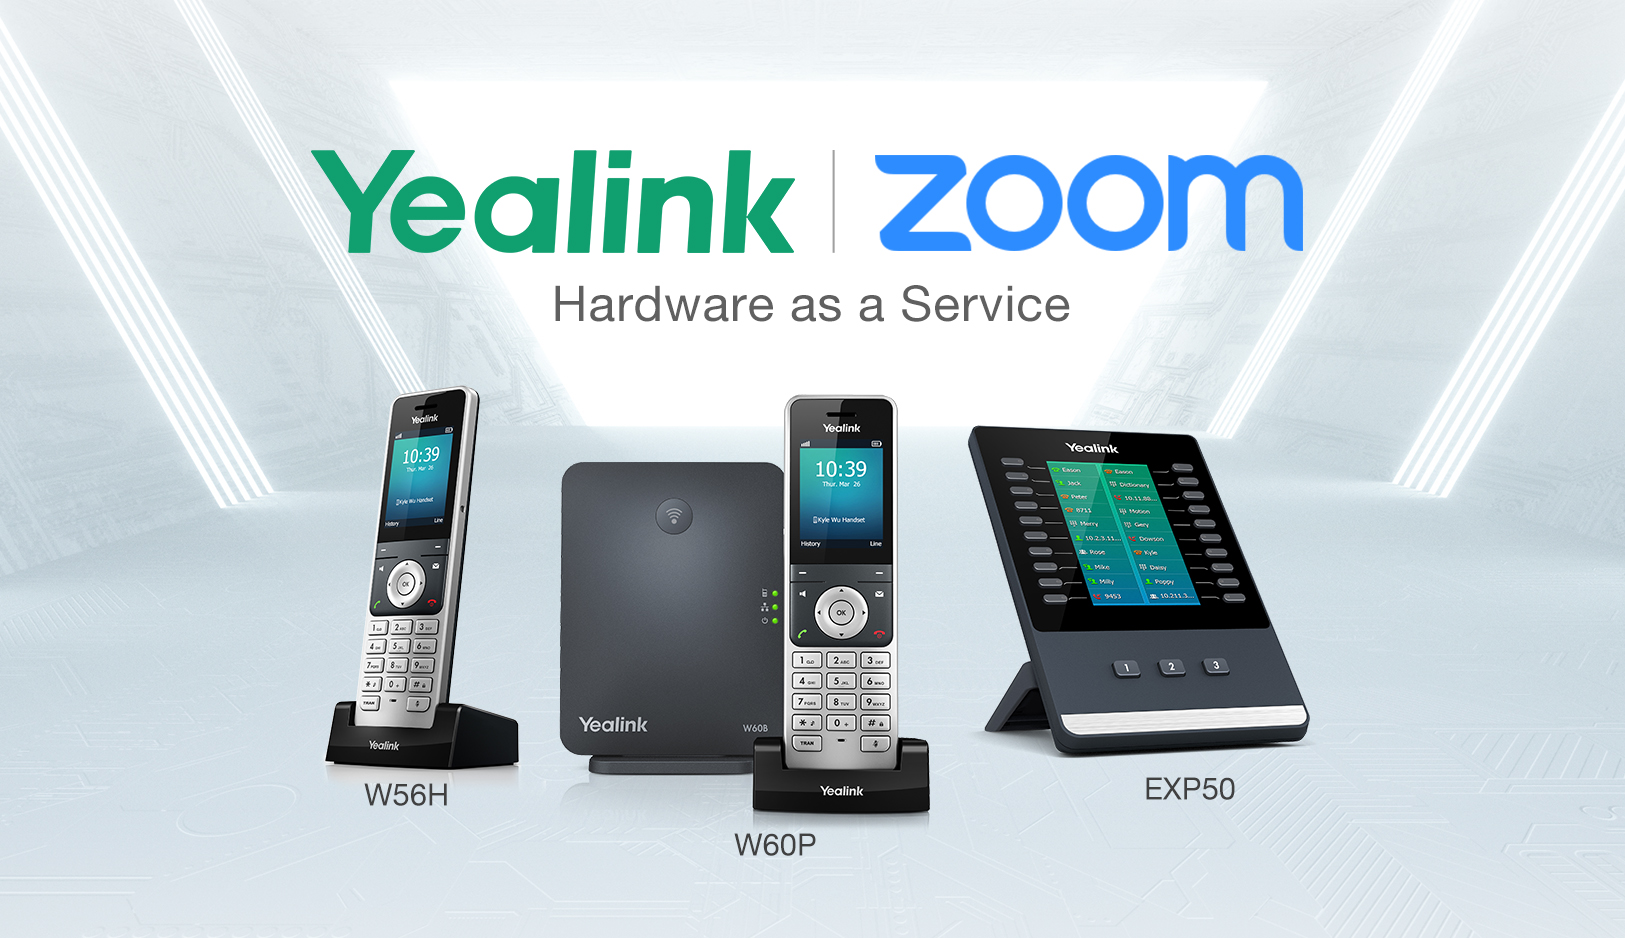 Yealink announces new products for the Zoom Hardware as a Service Program